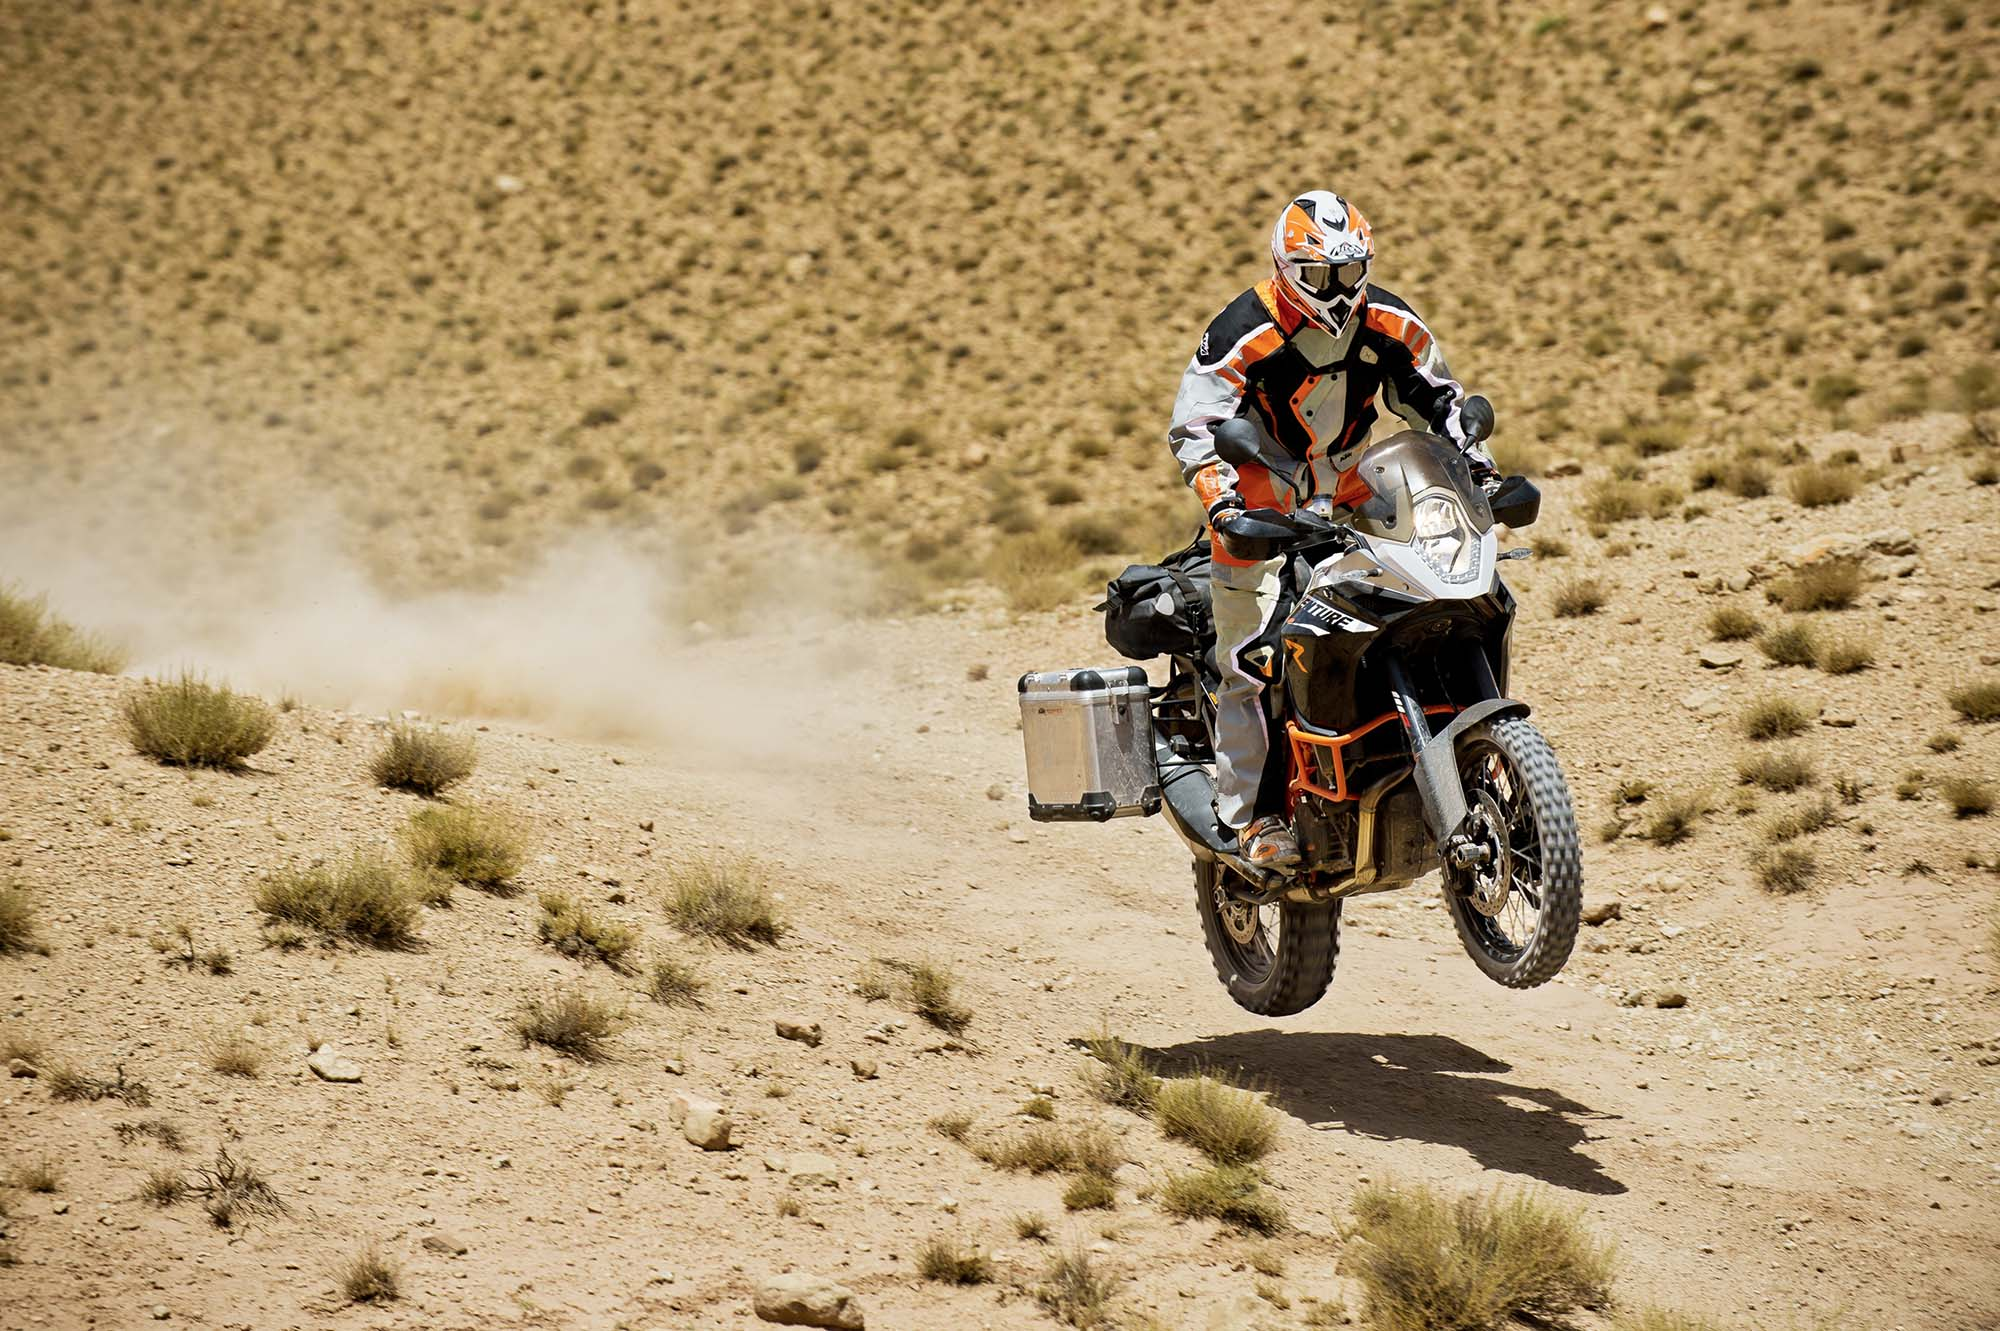 Ktm 690 Enduro R >> 35 Photos of the KTM 1190 Adventure - Asphalt & Rubber